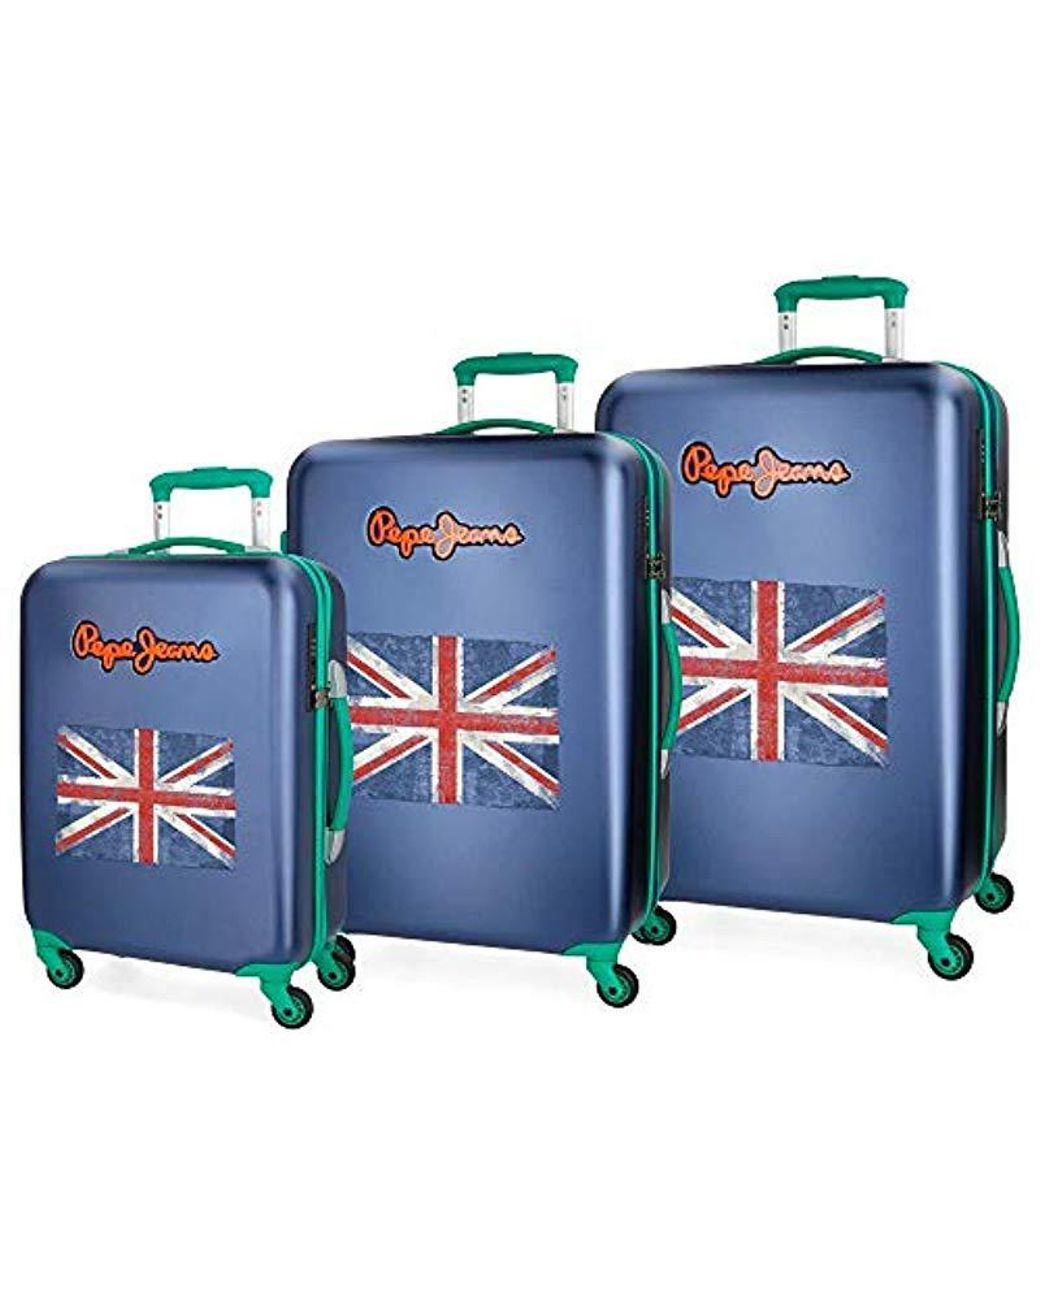 BleuazulHomme Bristol Bagages Centimeters De 204 Set 77 f7gb6y